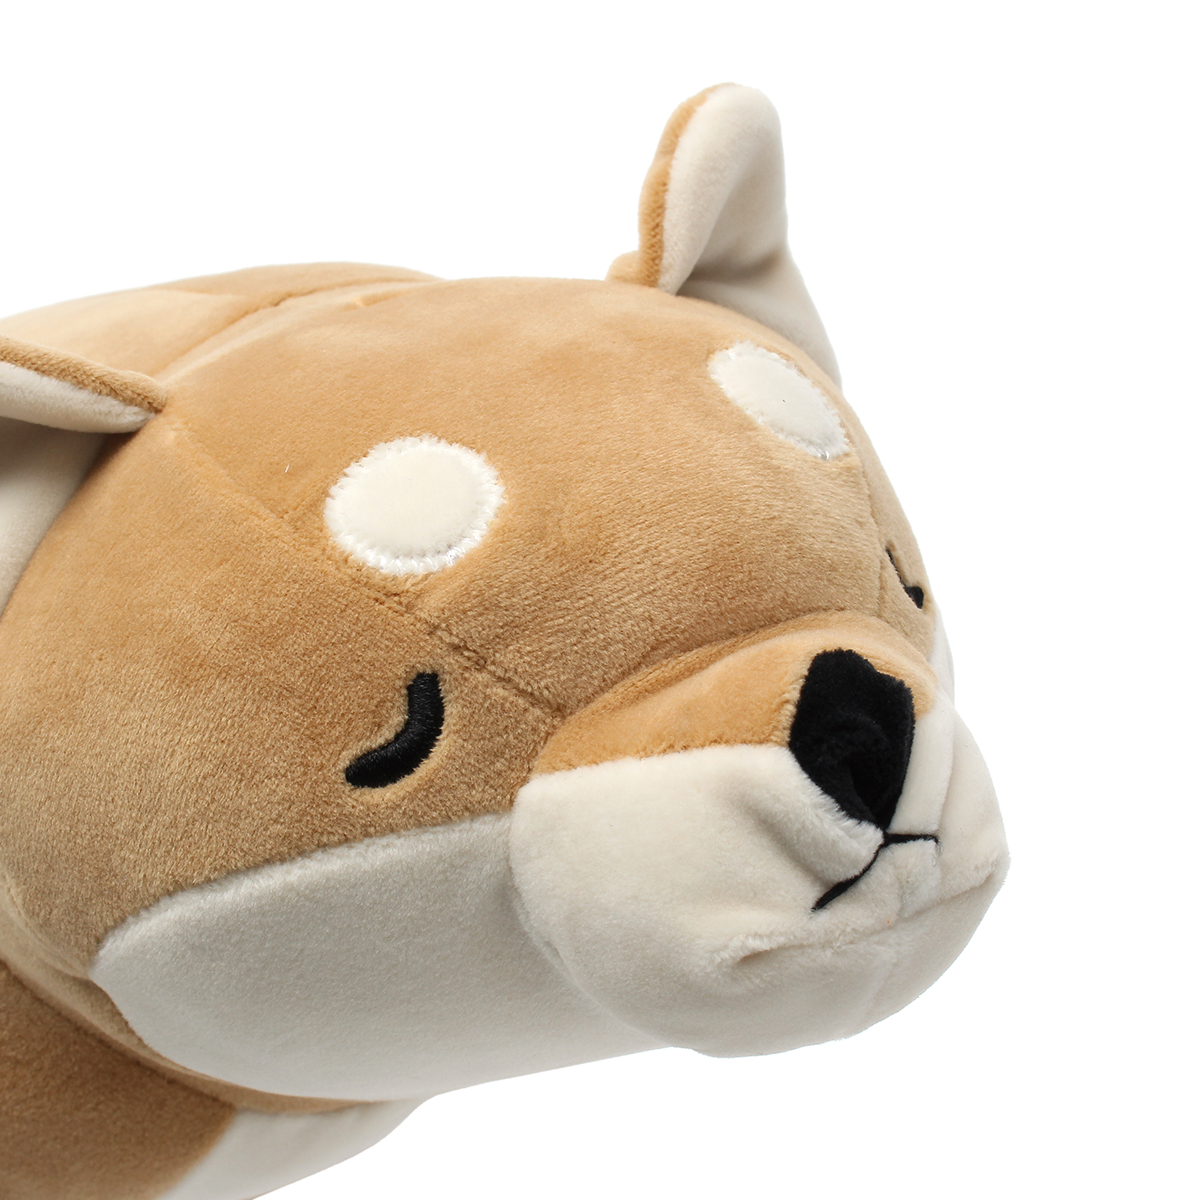 50cm Japanese Anime Shiba Inu Dog Stuffed Plush Toy Doll Soft Stuffed Animal Toy Cute Gift